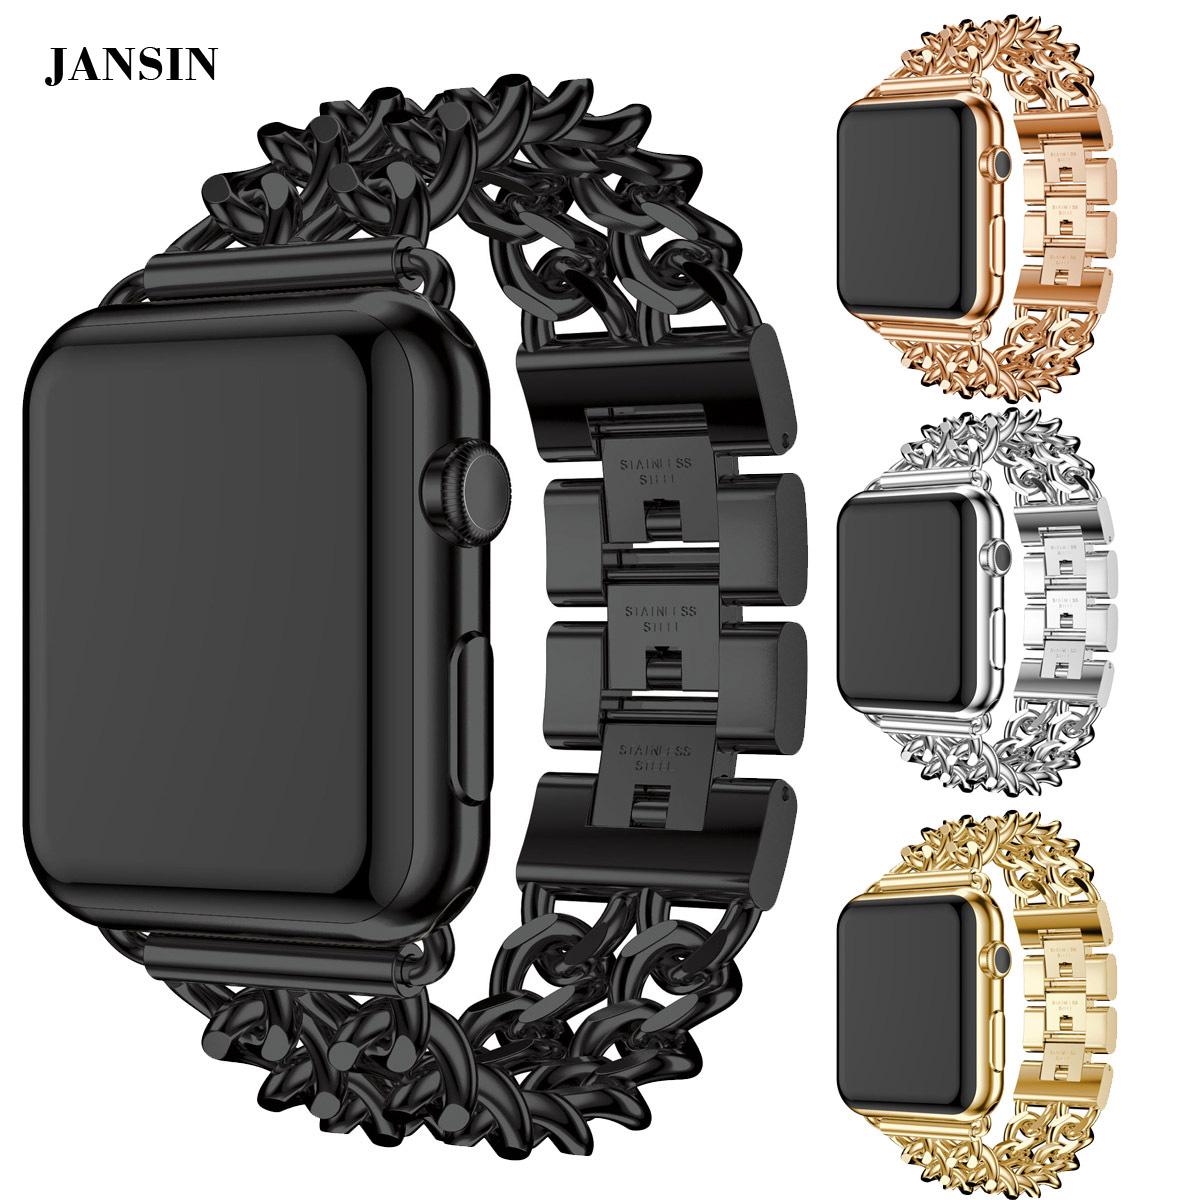 JANSIN Link Bracelet Band For Apple Watch 38mm 42mm Stainless Steel strap wristband Metal Band for iWatch Series 3 2 1 цена